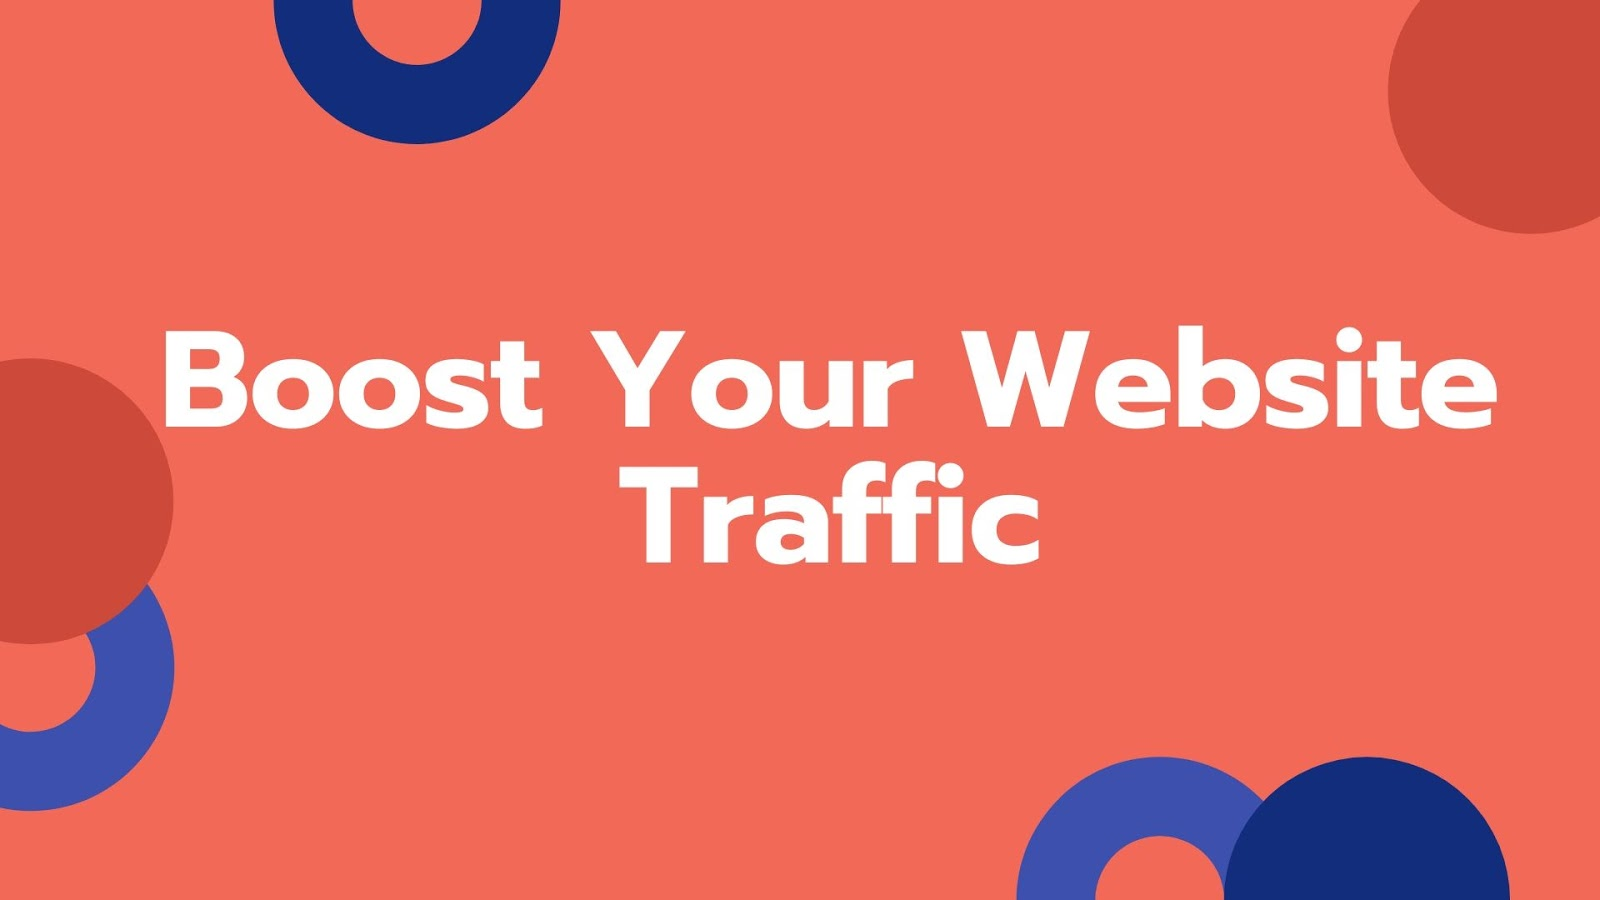 Increase Traffic on Your Website, Attractive Headlines, Keyword Research, Long-Tail Keywords, Guest Blogging,